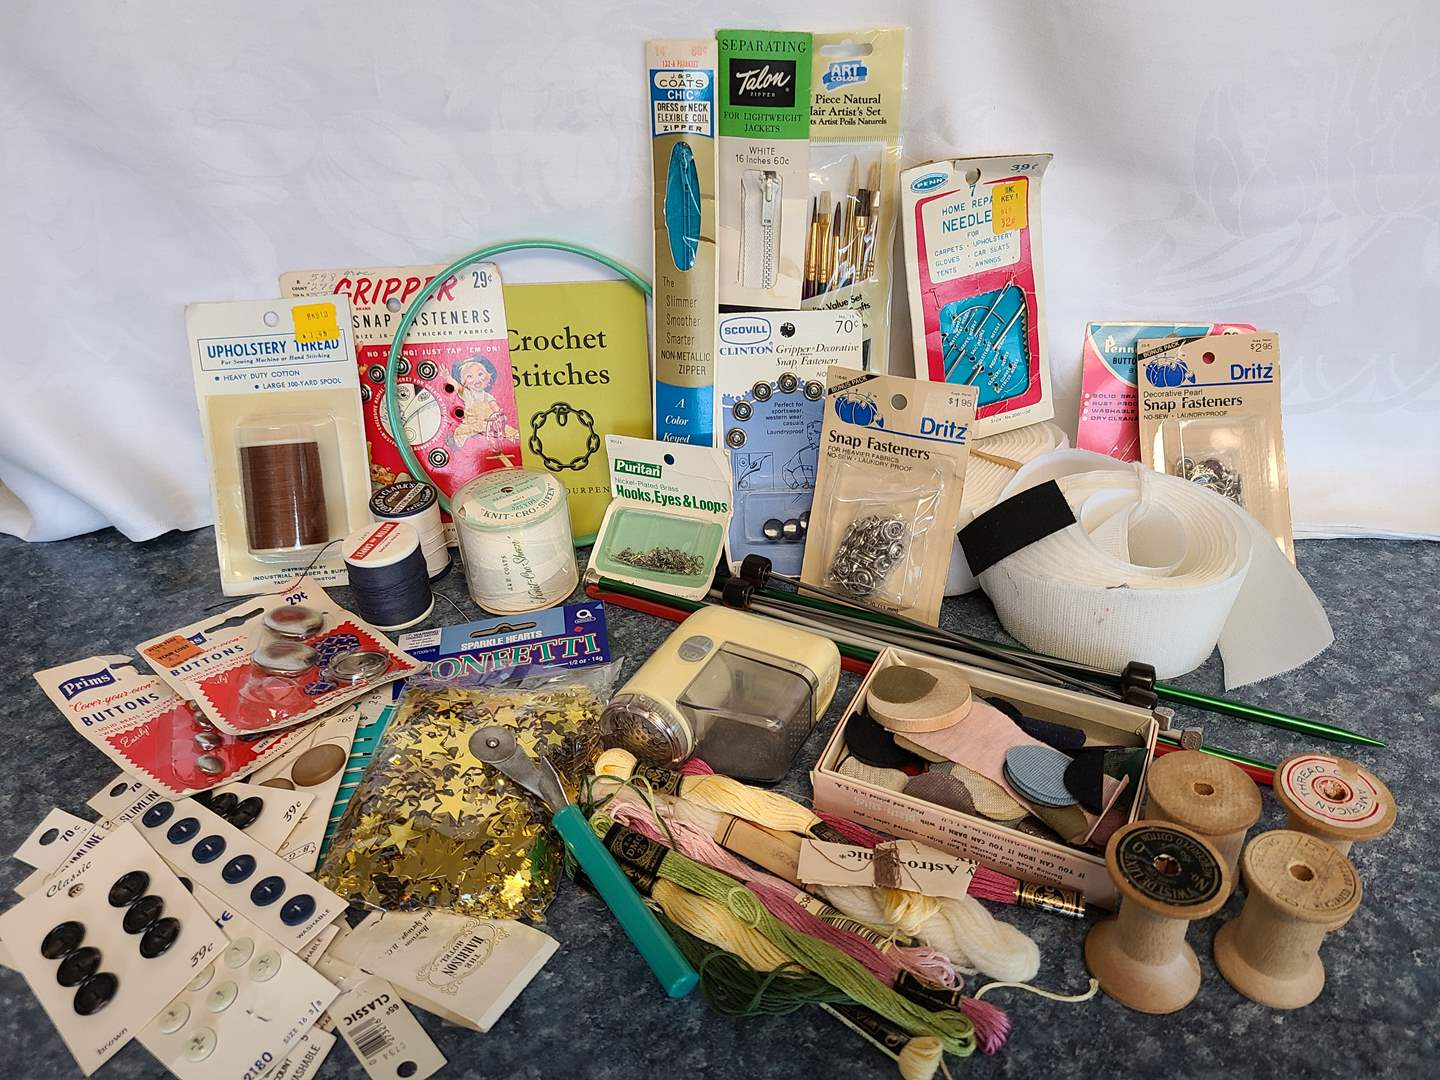 Lot# 53 - A bunch of Sewing Findings and Sweater Shaver (main image)